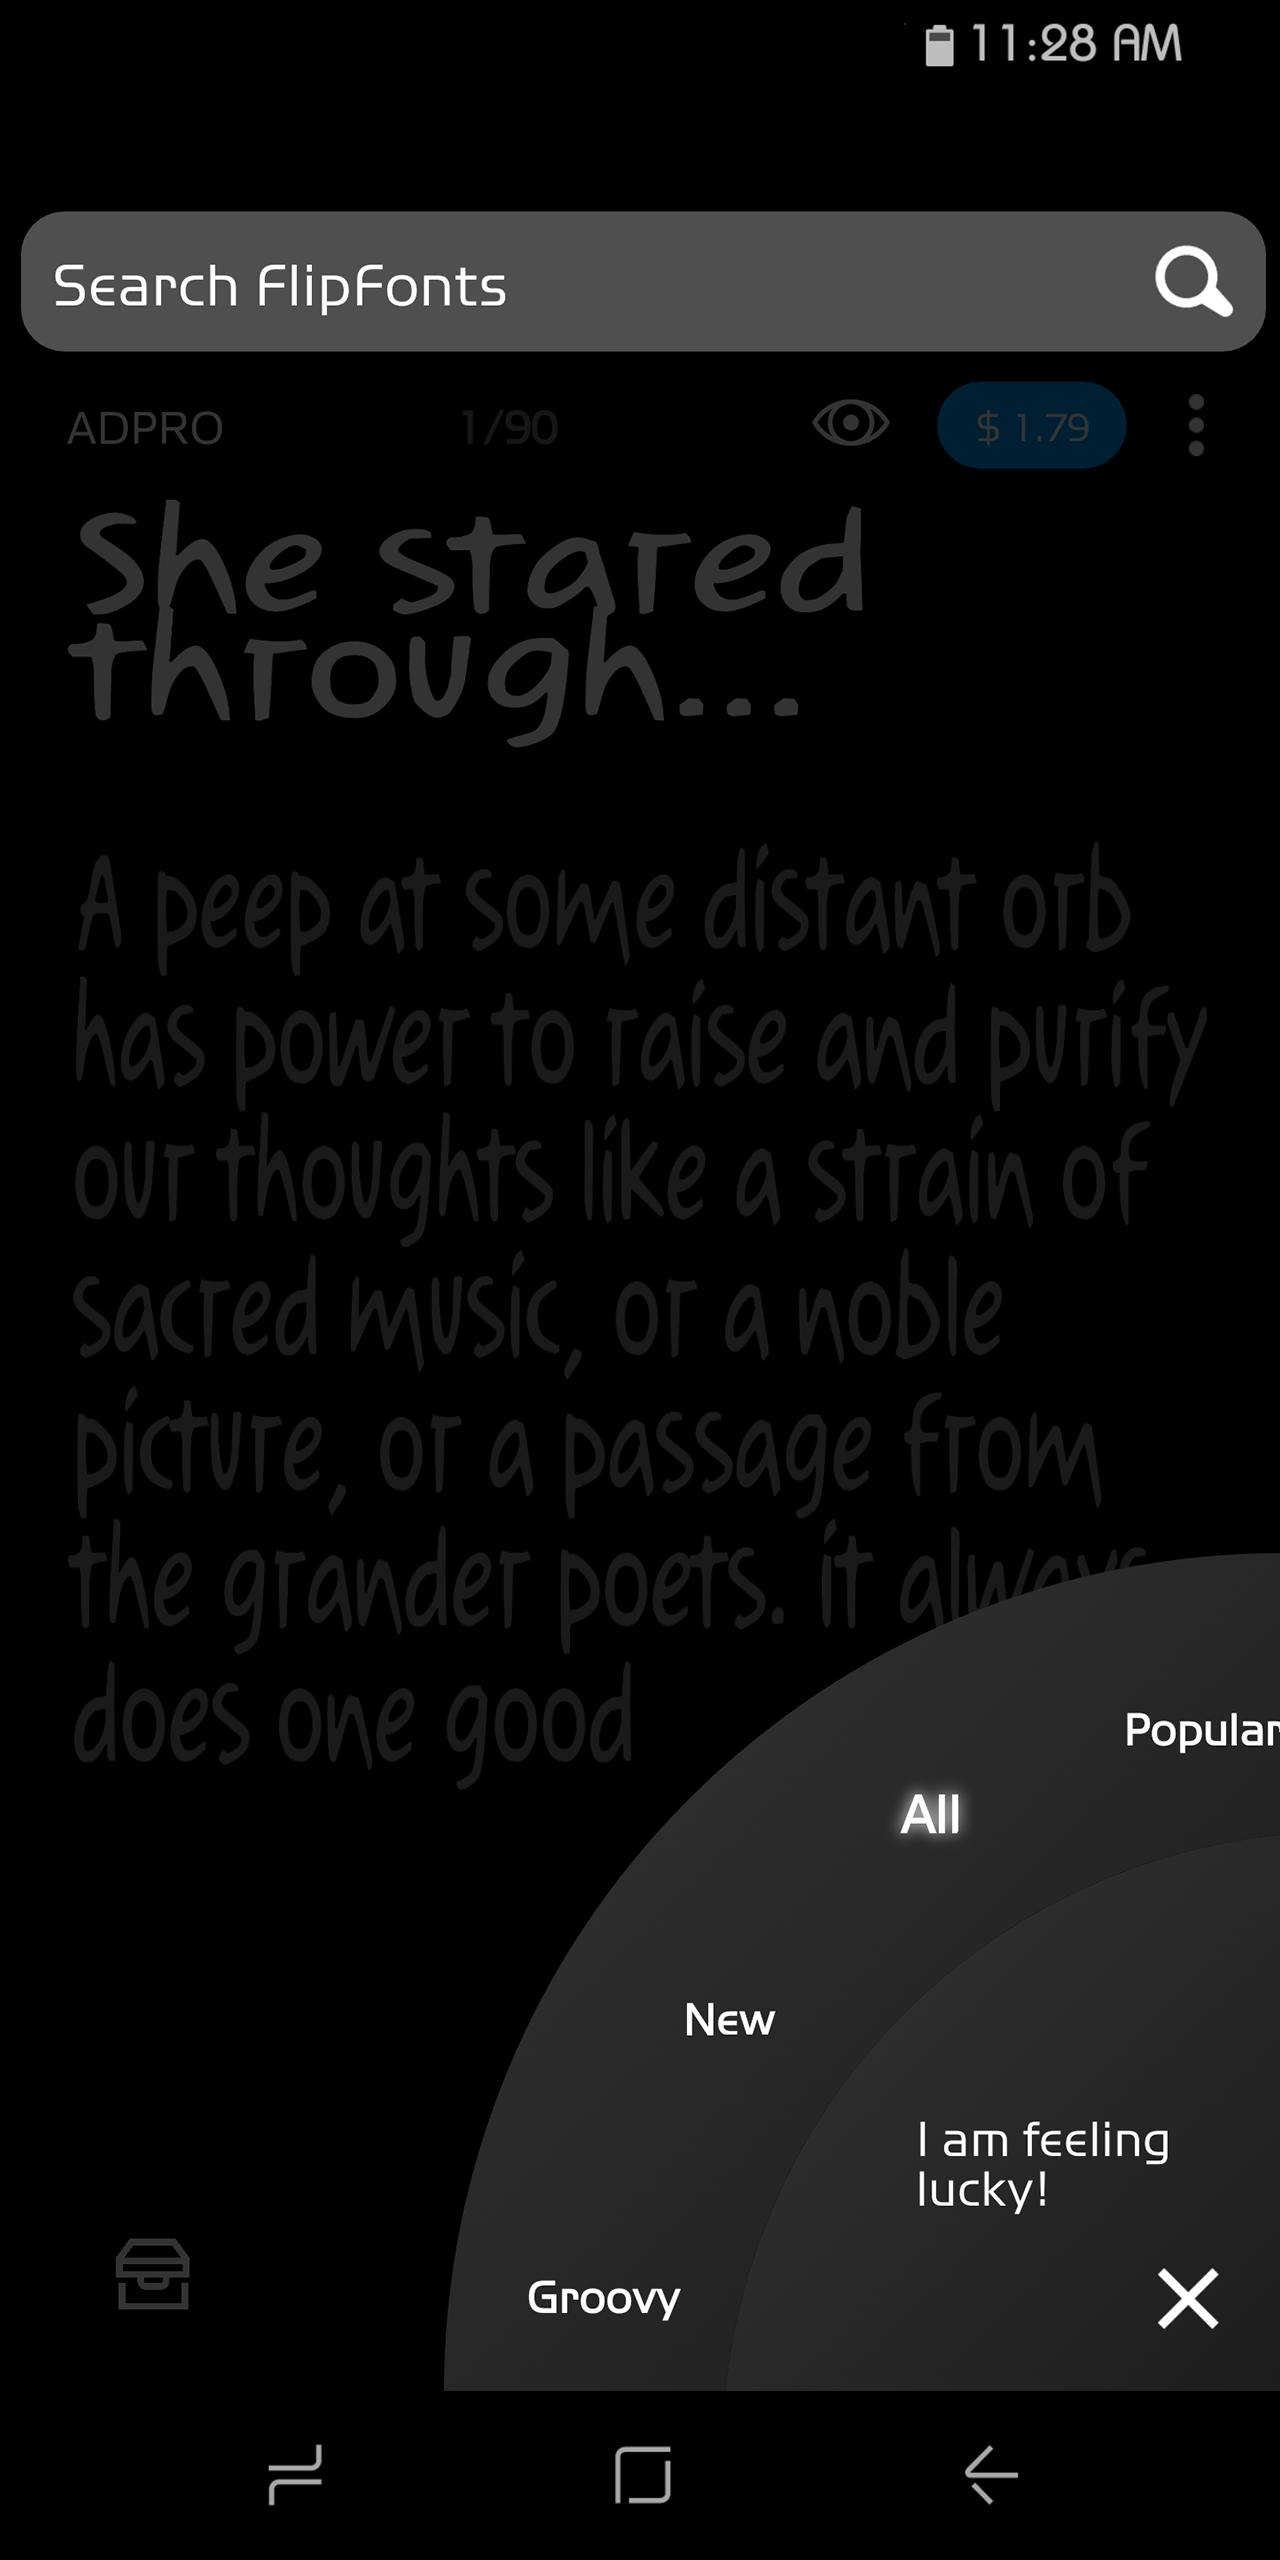 FlipFont for Android - APK Download